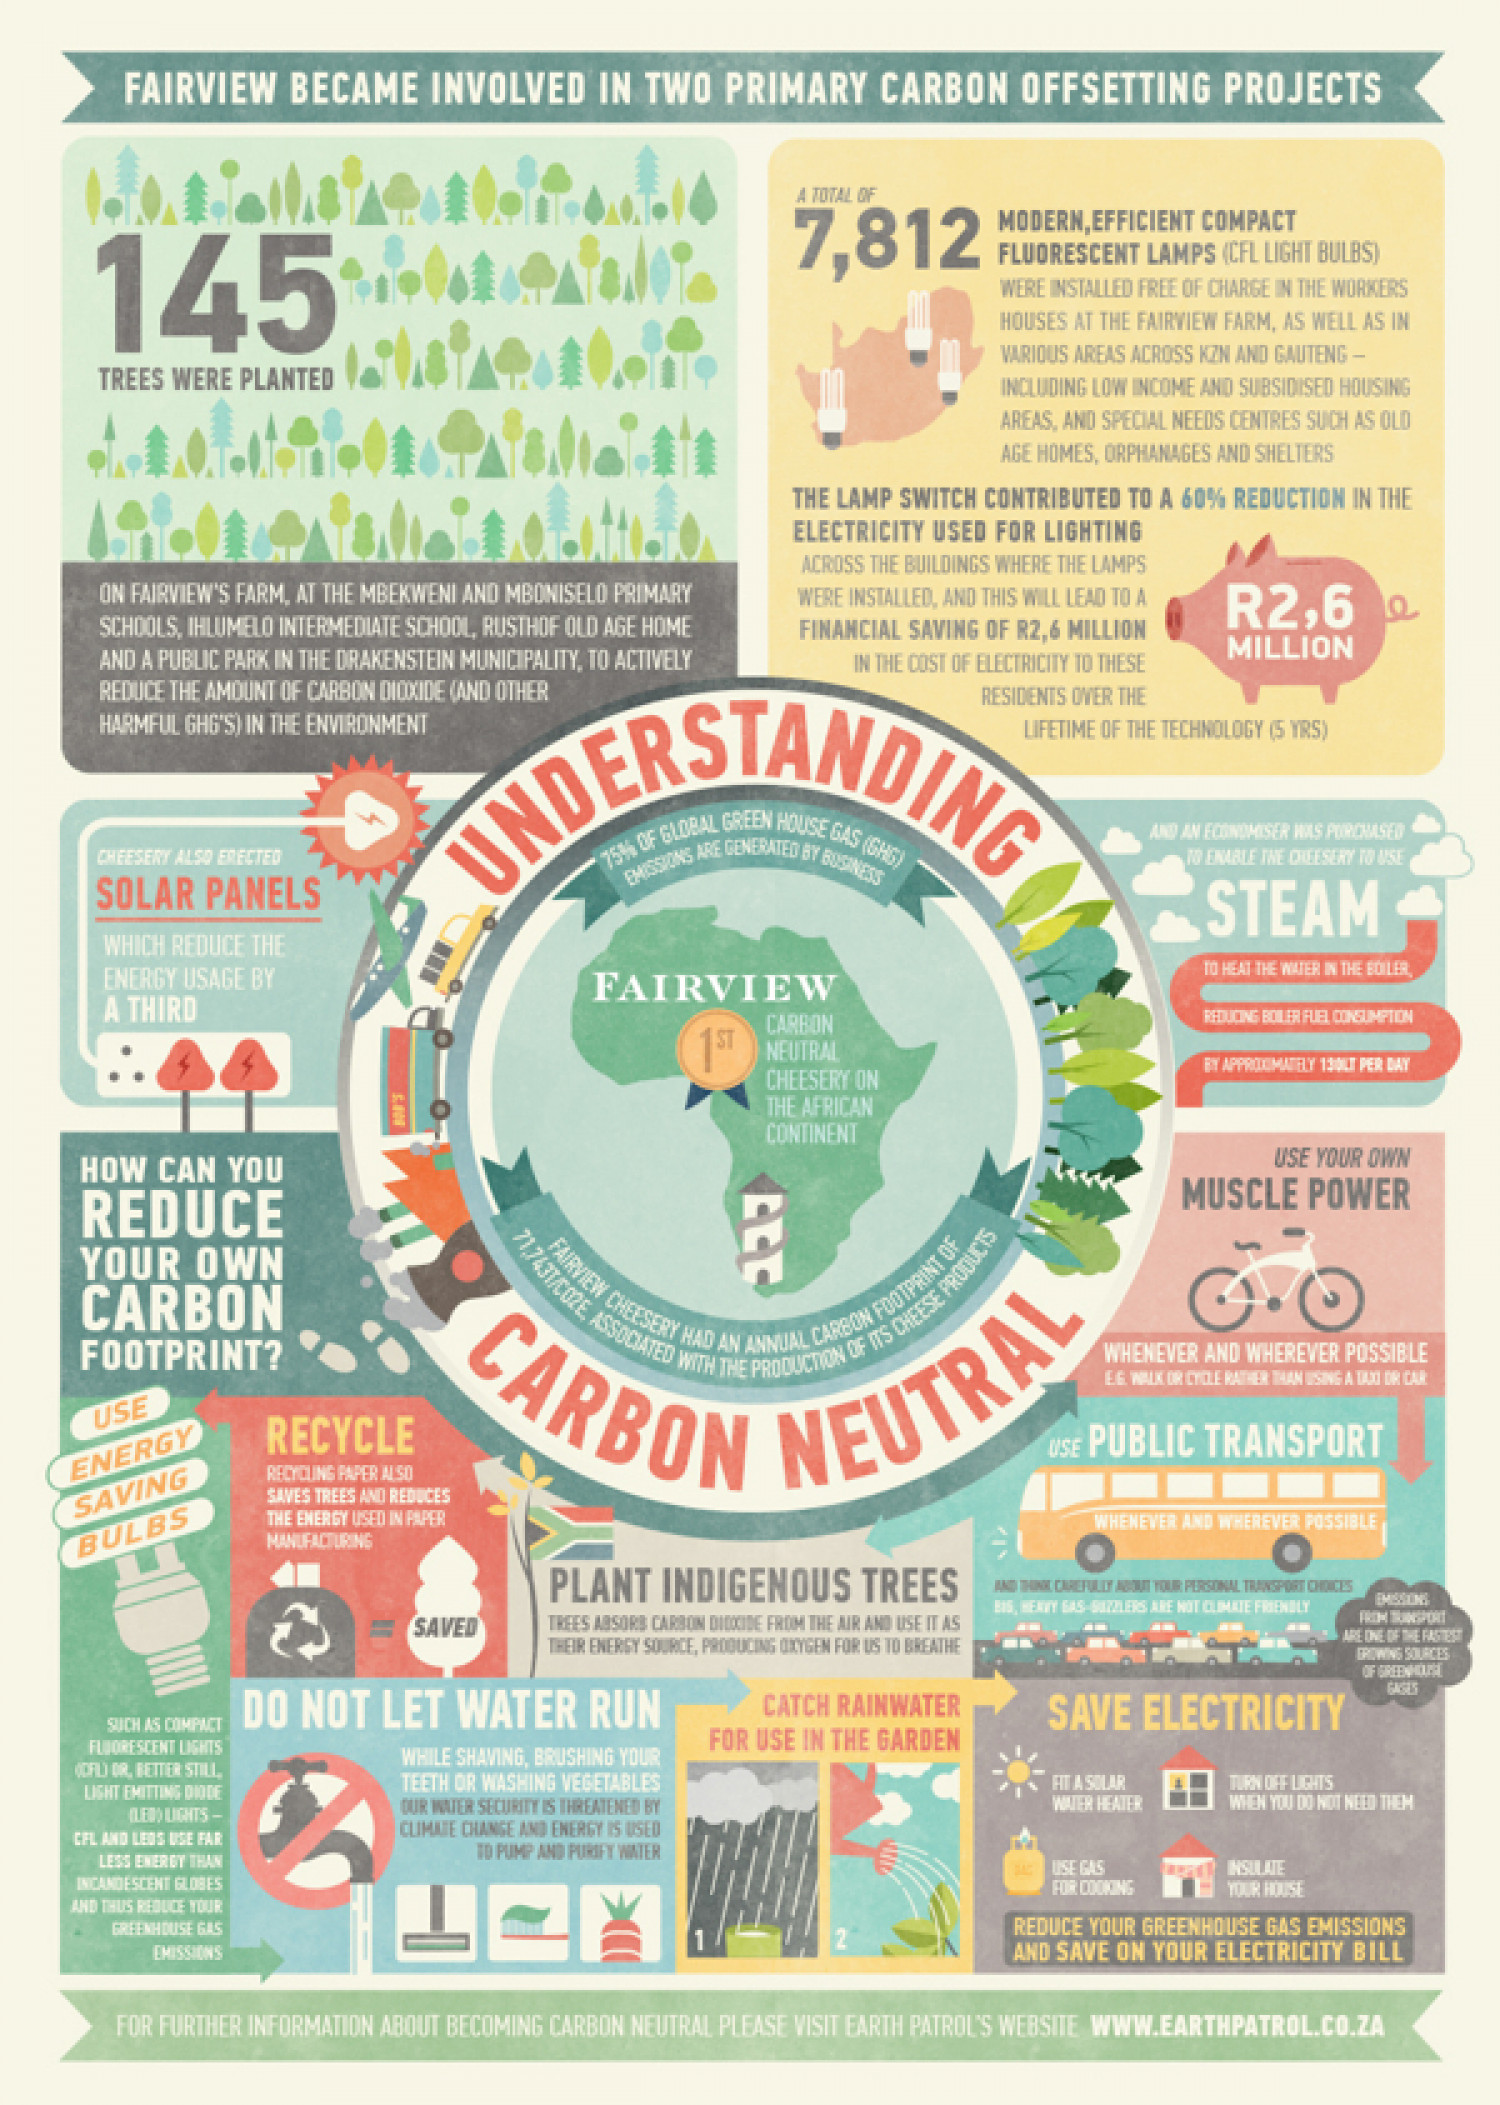 Carbon Neutral Infographic